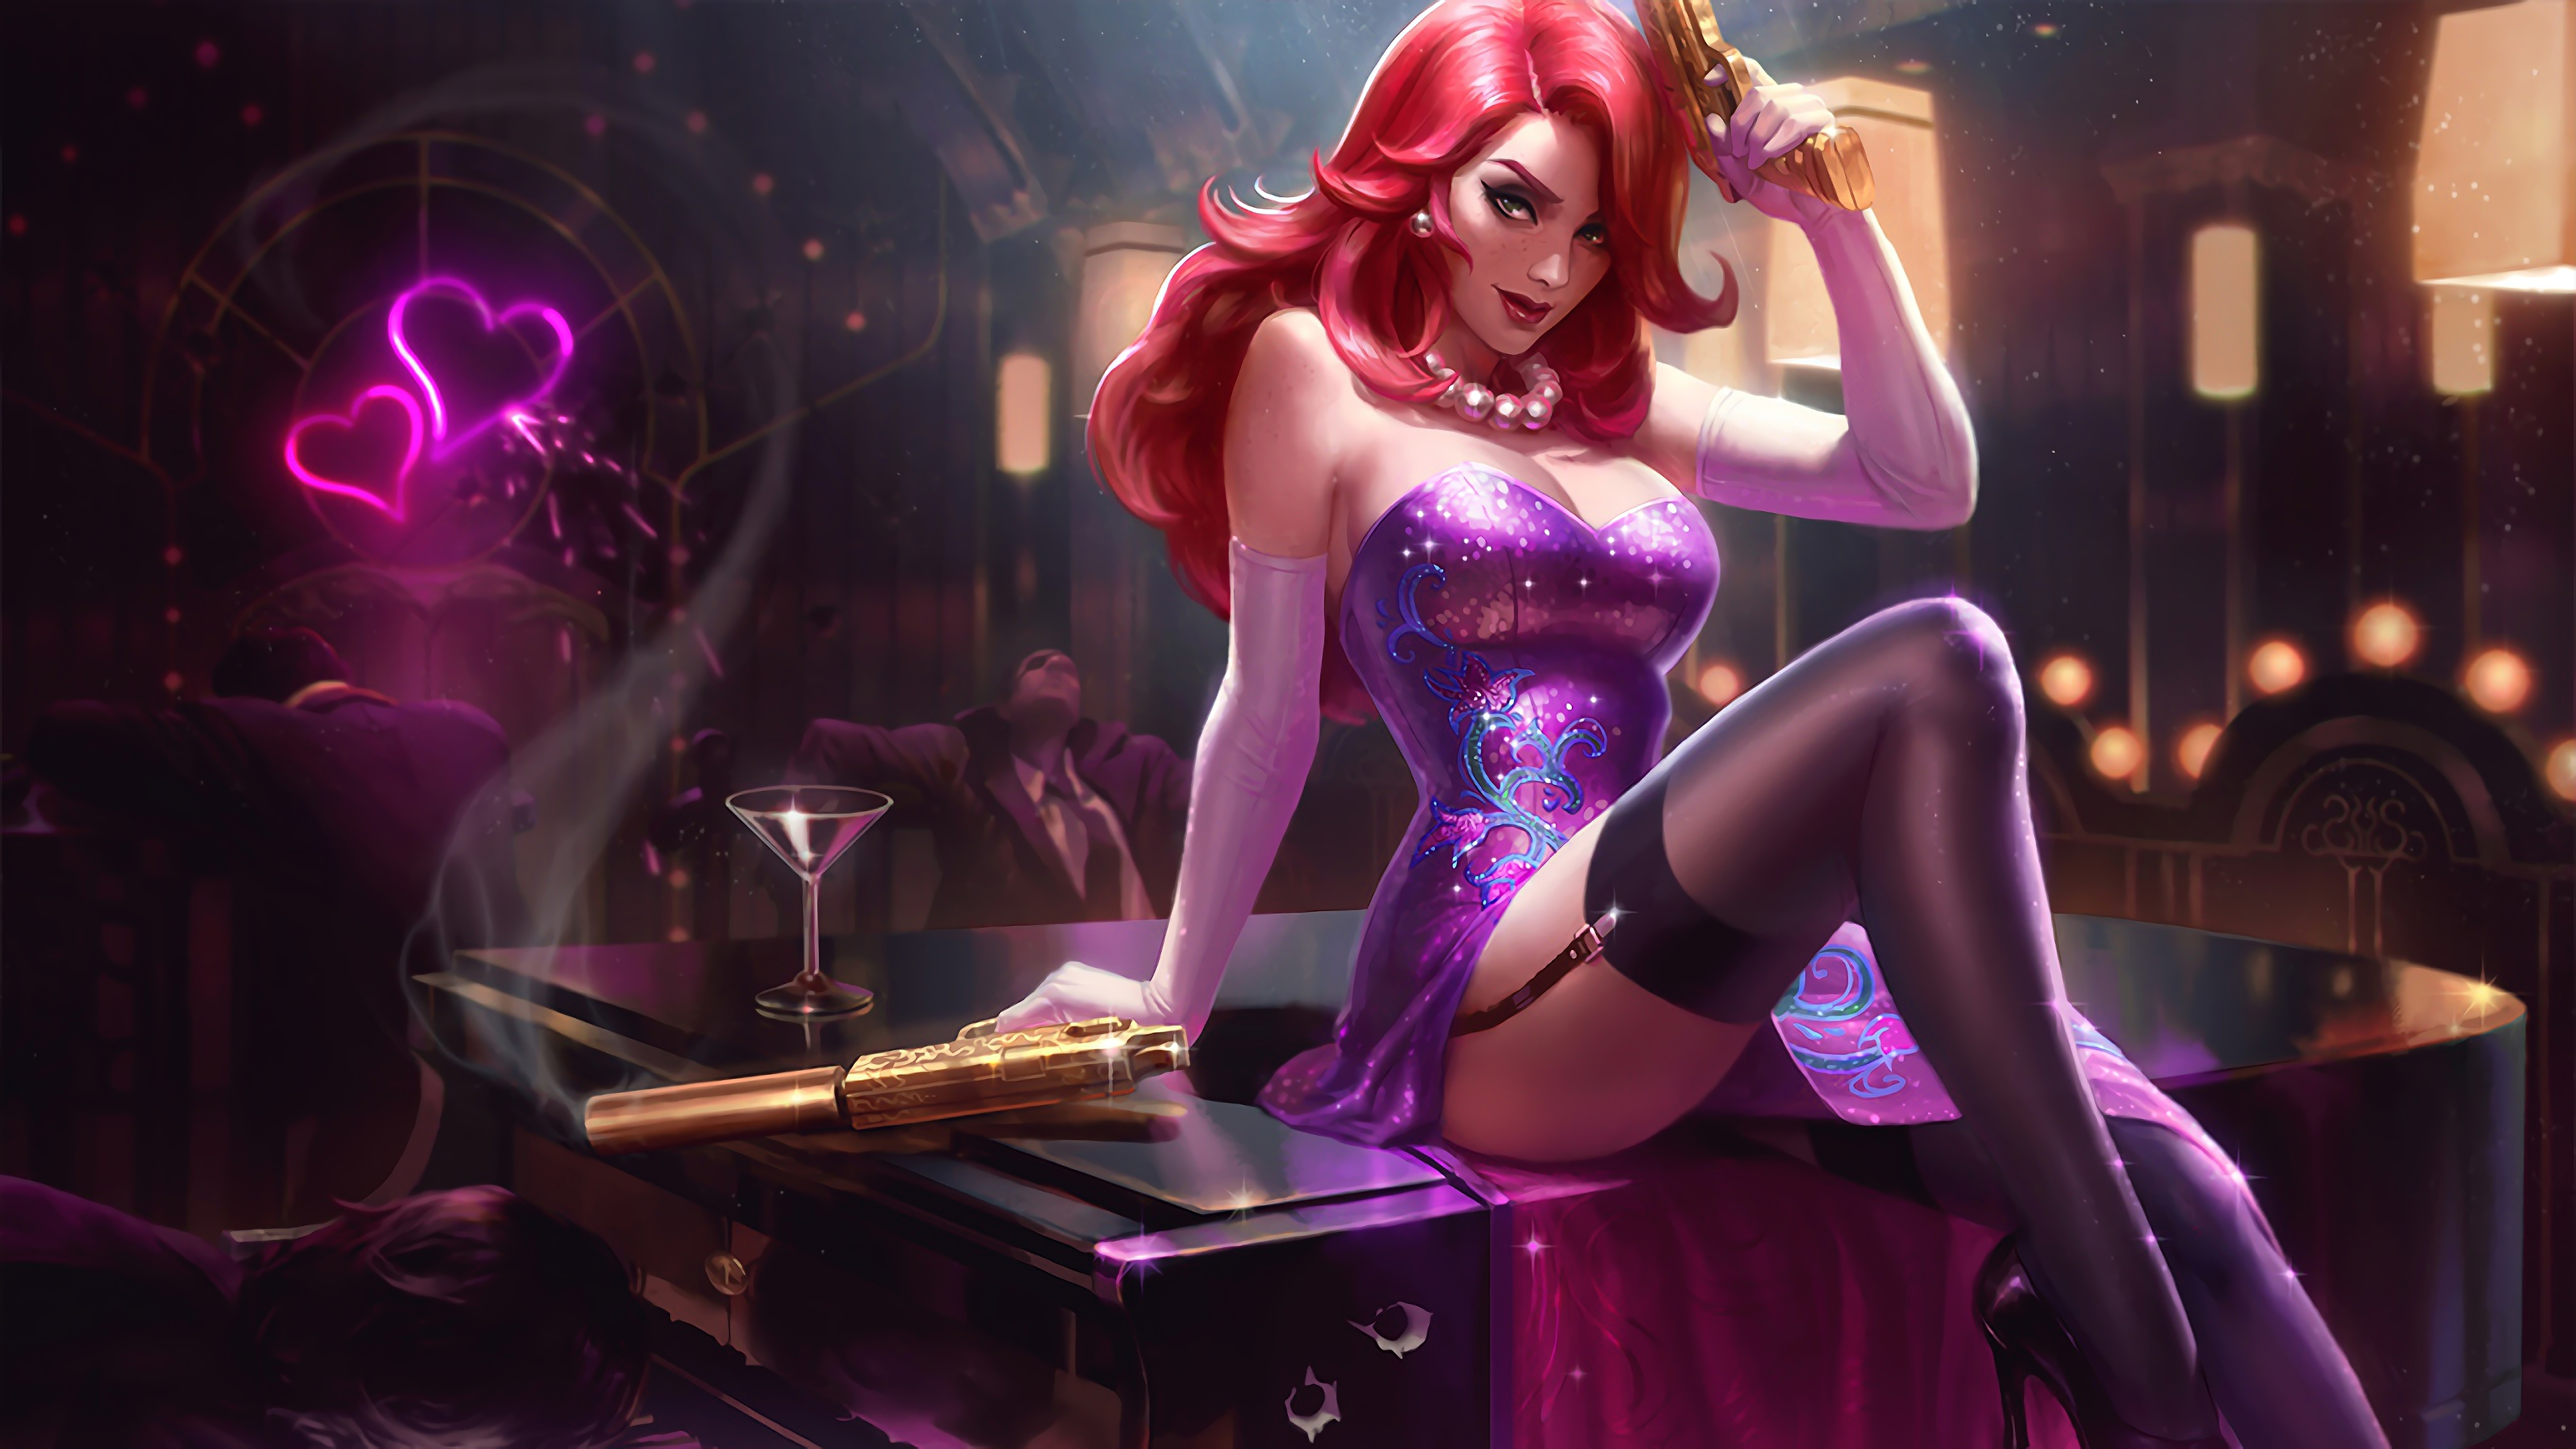 Wallpaper 4k Secret Agent Miss Fortune Lol Splash Art League Of